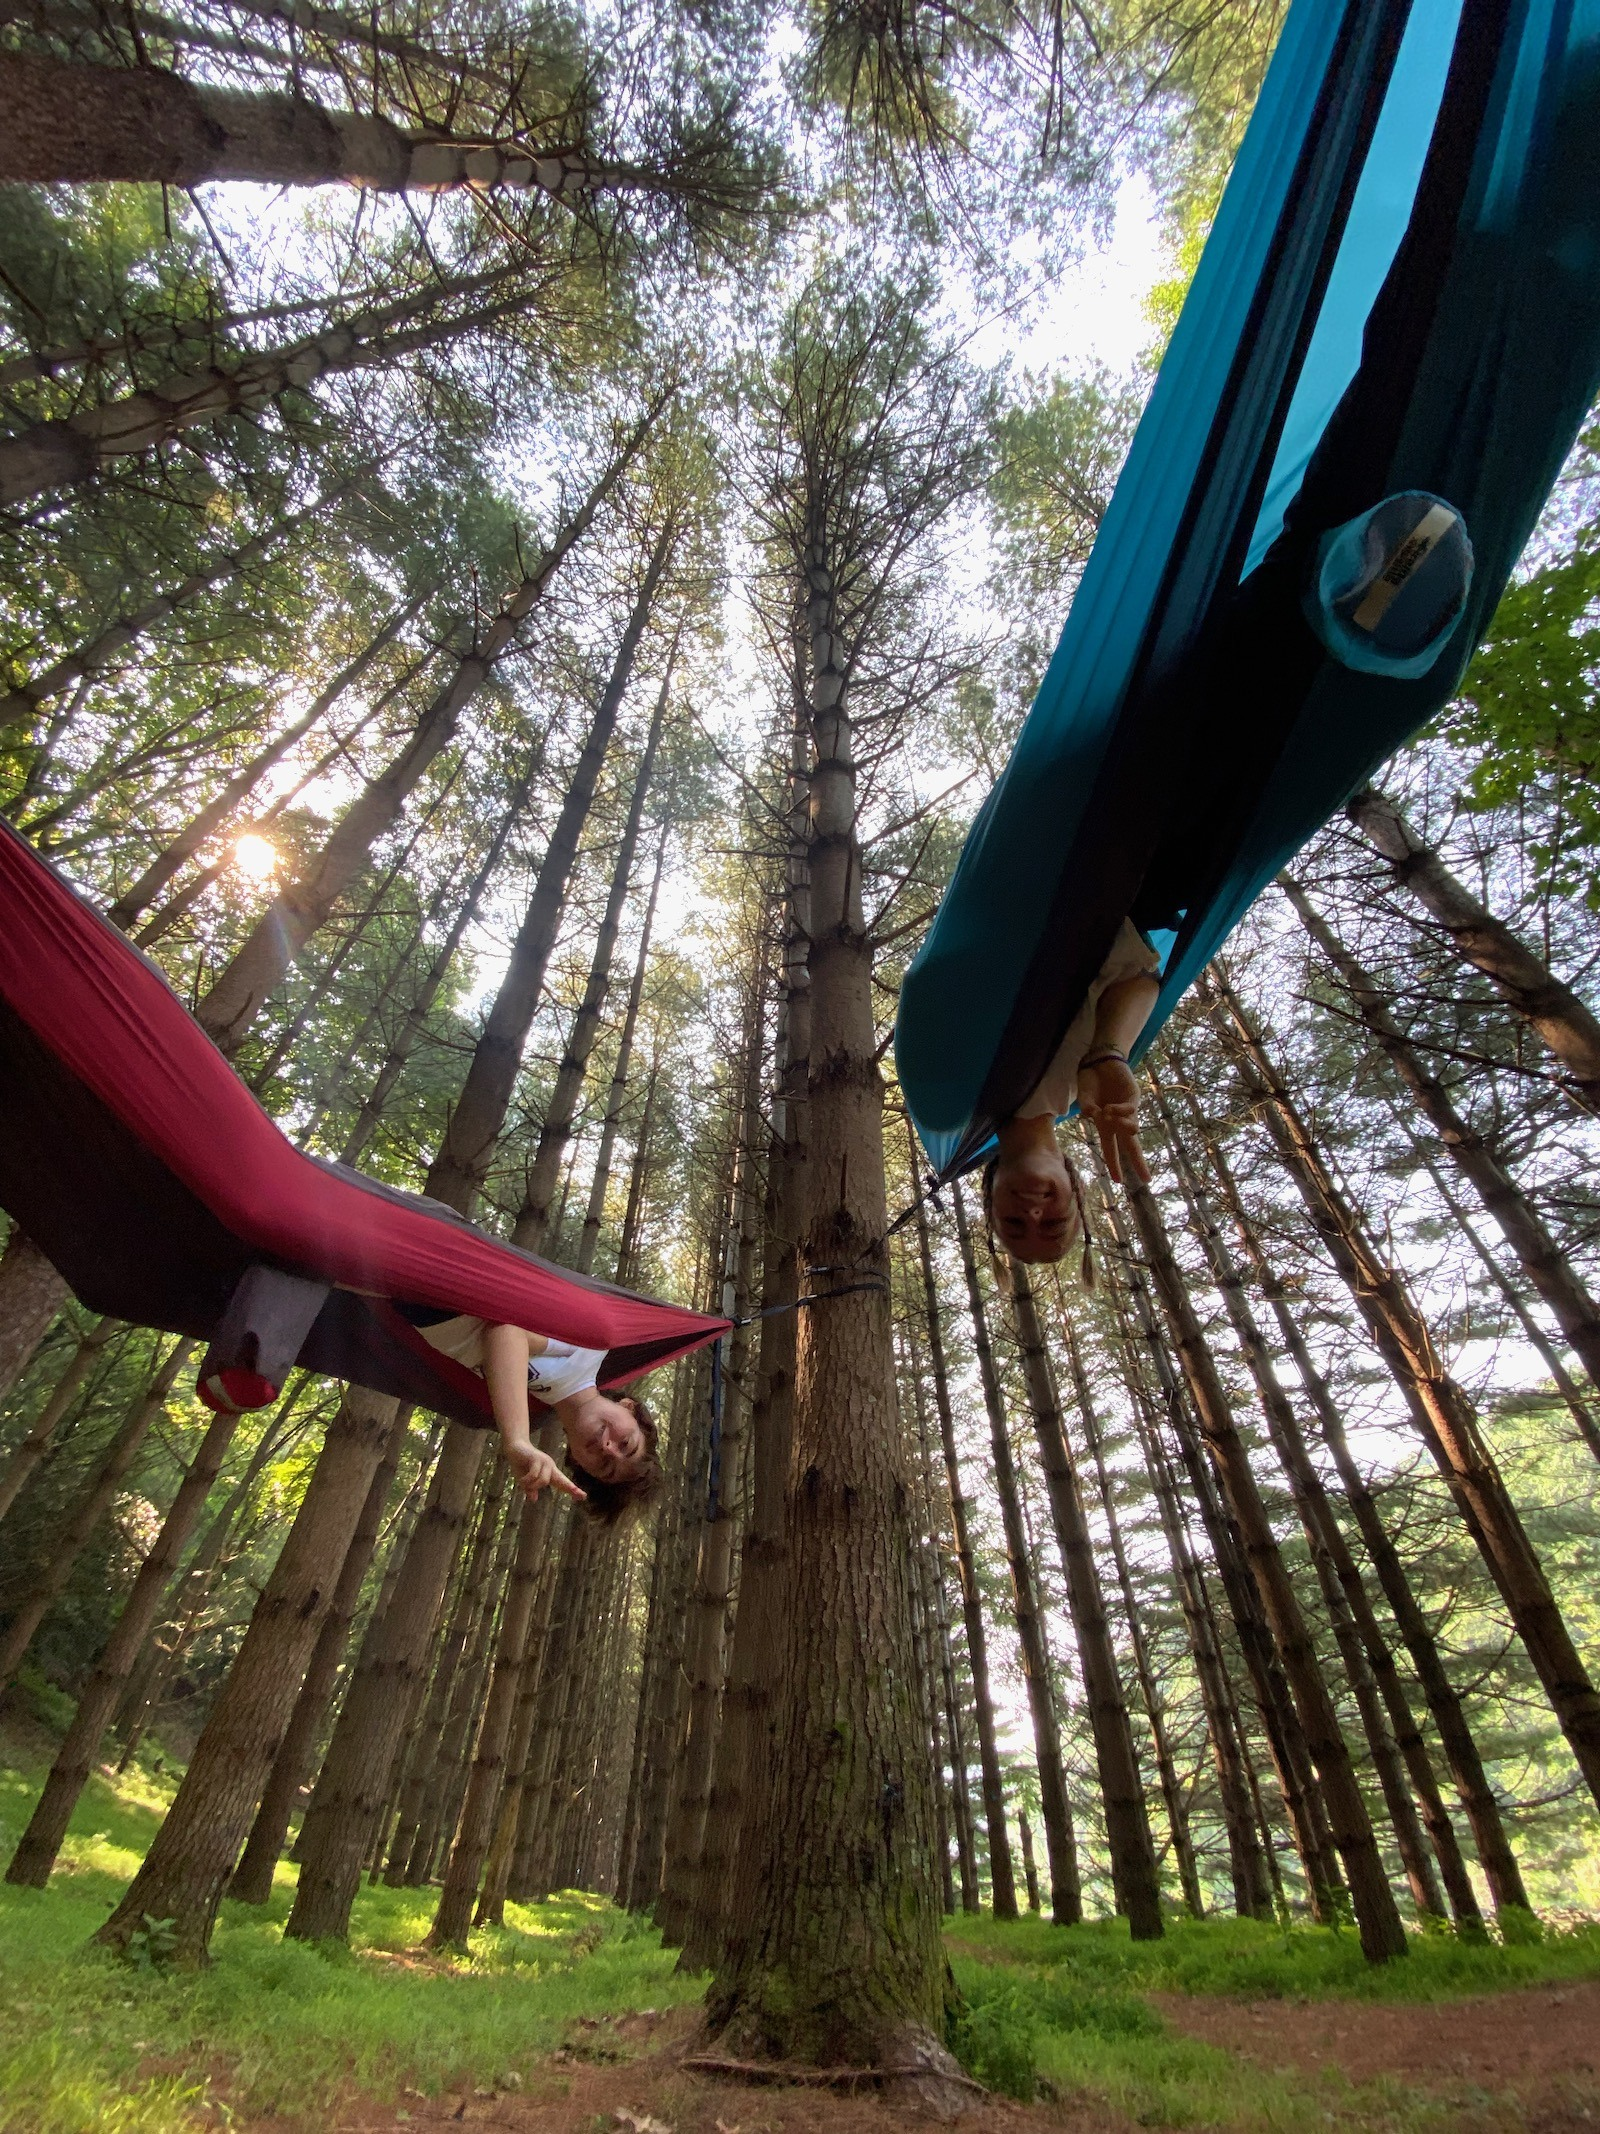 Two teenagers hanging out in hammocks tied to trees in the wilderness in North Carolina.